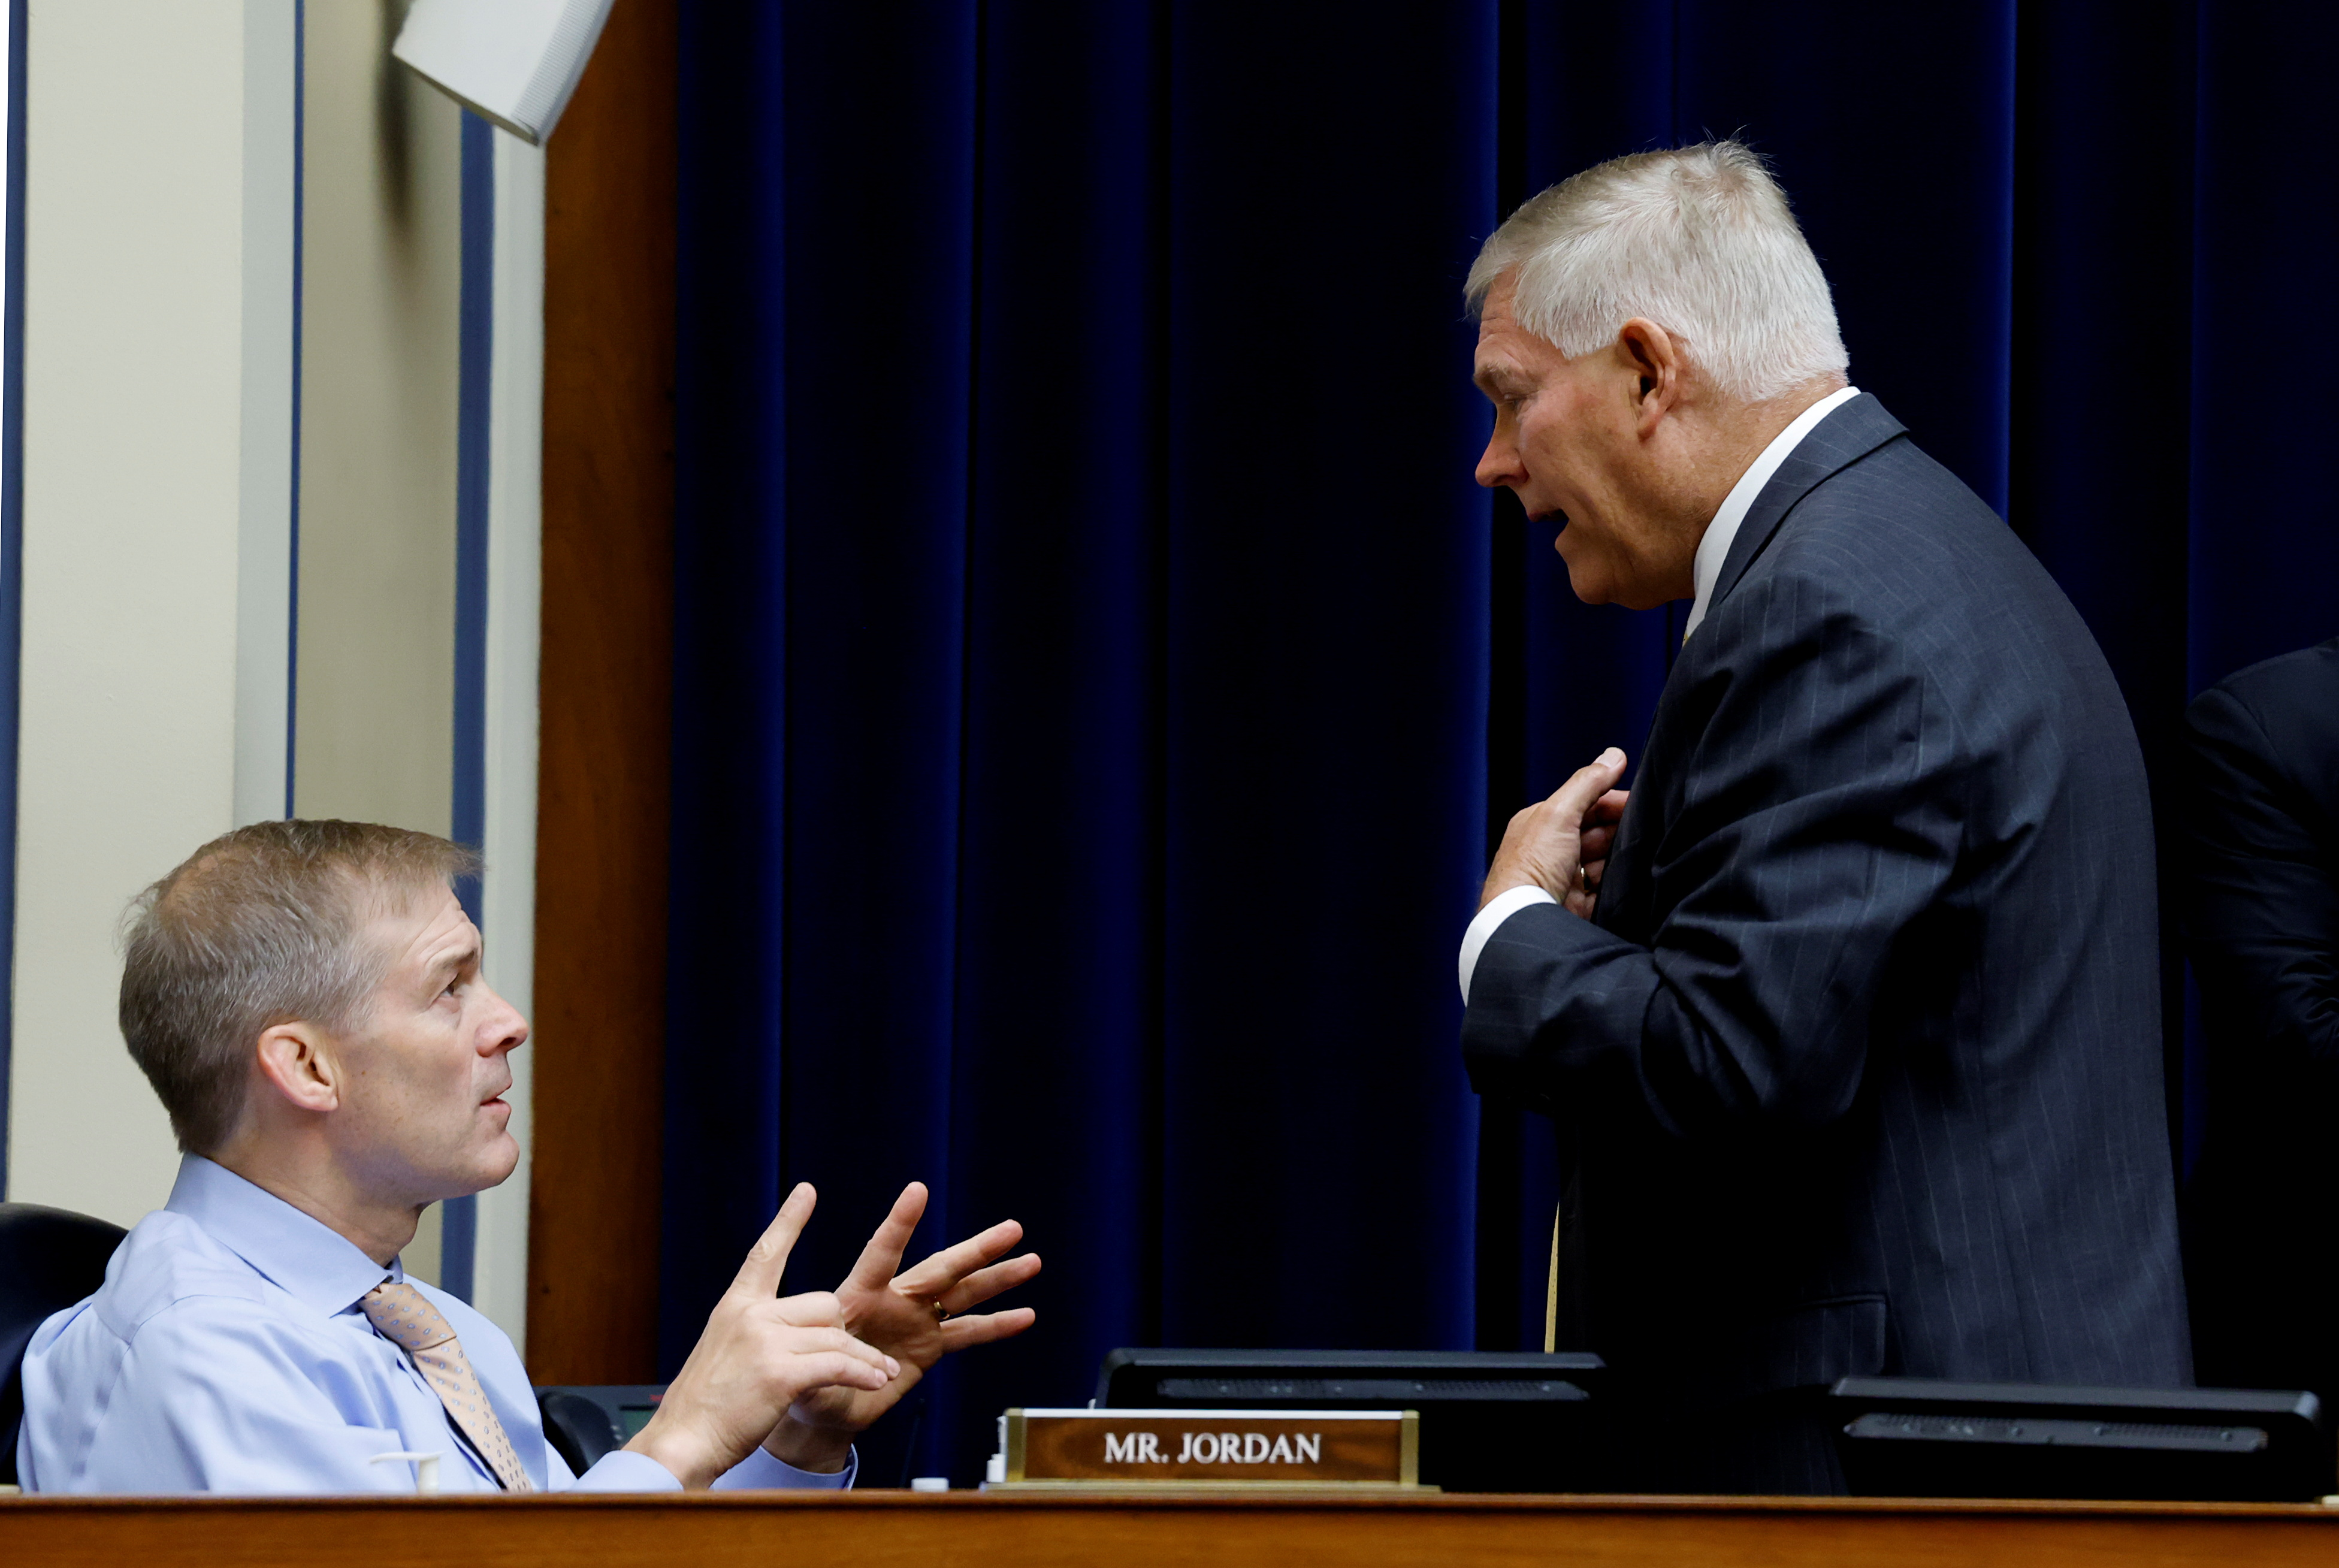 U.S. Rep. Jim Jordan (R-OH) speaks with Rep. Pete Sessions (R-TX) during a House Oversight and Reform Committee hearing titled ?The Capitol Insurrection: Unexplained Delays and Unanswered Questions,? regarding the on January 6 attack on the U.S. Capitol, on Capitol Hill in Washington, U..S., May 12, 2021 REUTERS/Jonathan Ernst/Pool